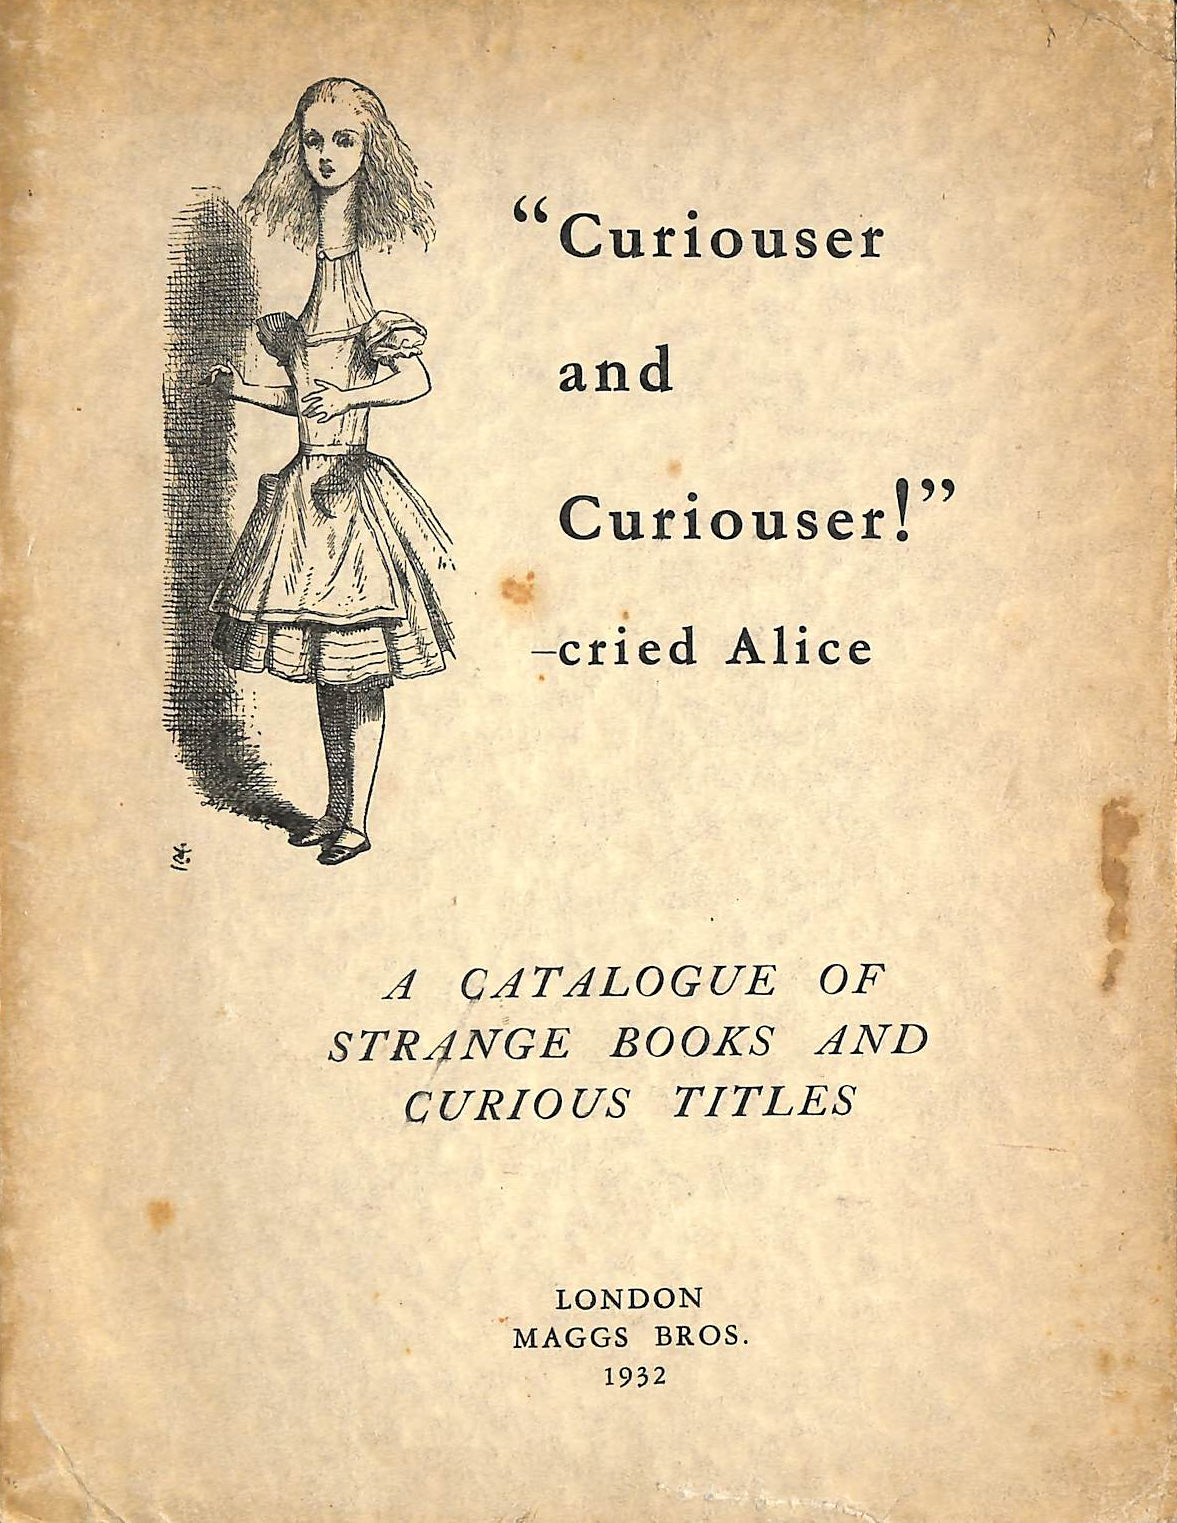 Image for Curiouser and Curiouser! Cried Alice. A Catalogue of Strange Books and Curious Titles. [Catalogue No. 574]